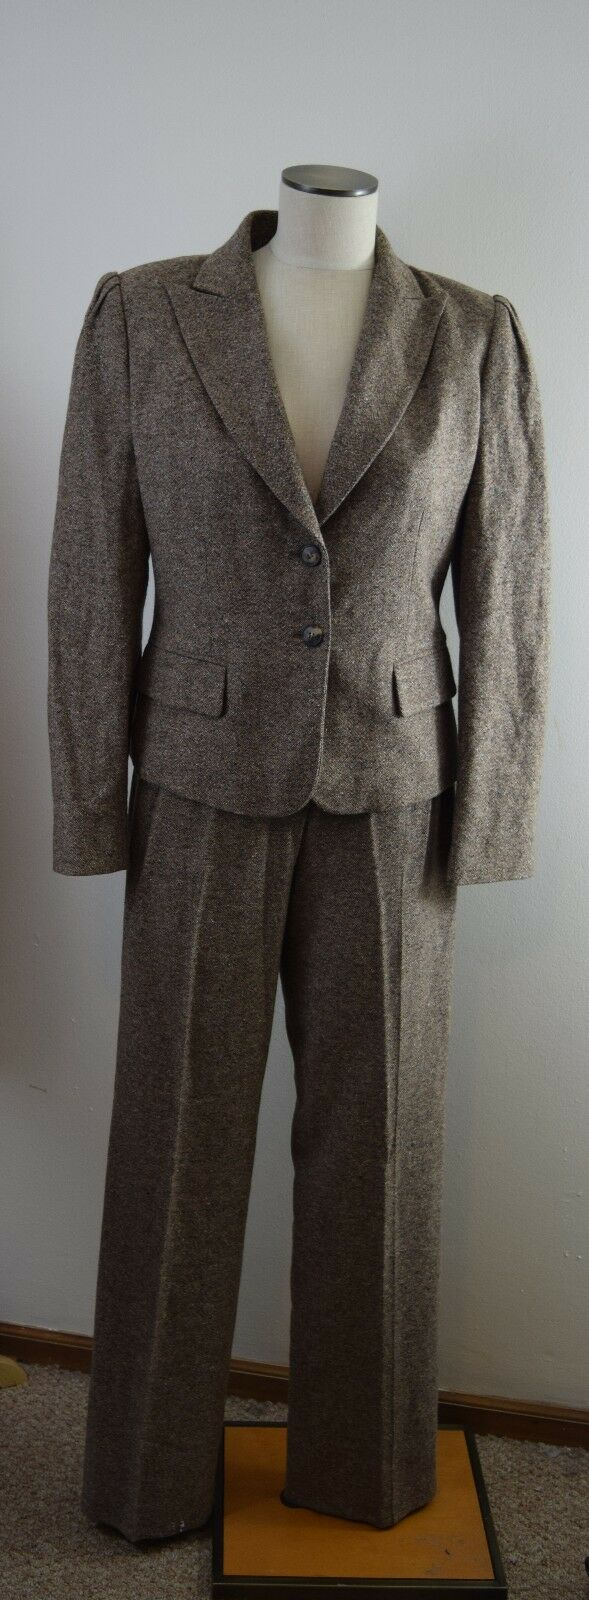 LES COPAINS Womens Tweed Elbow Patches Wool Blend  Pant SUIT 10